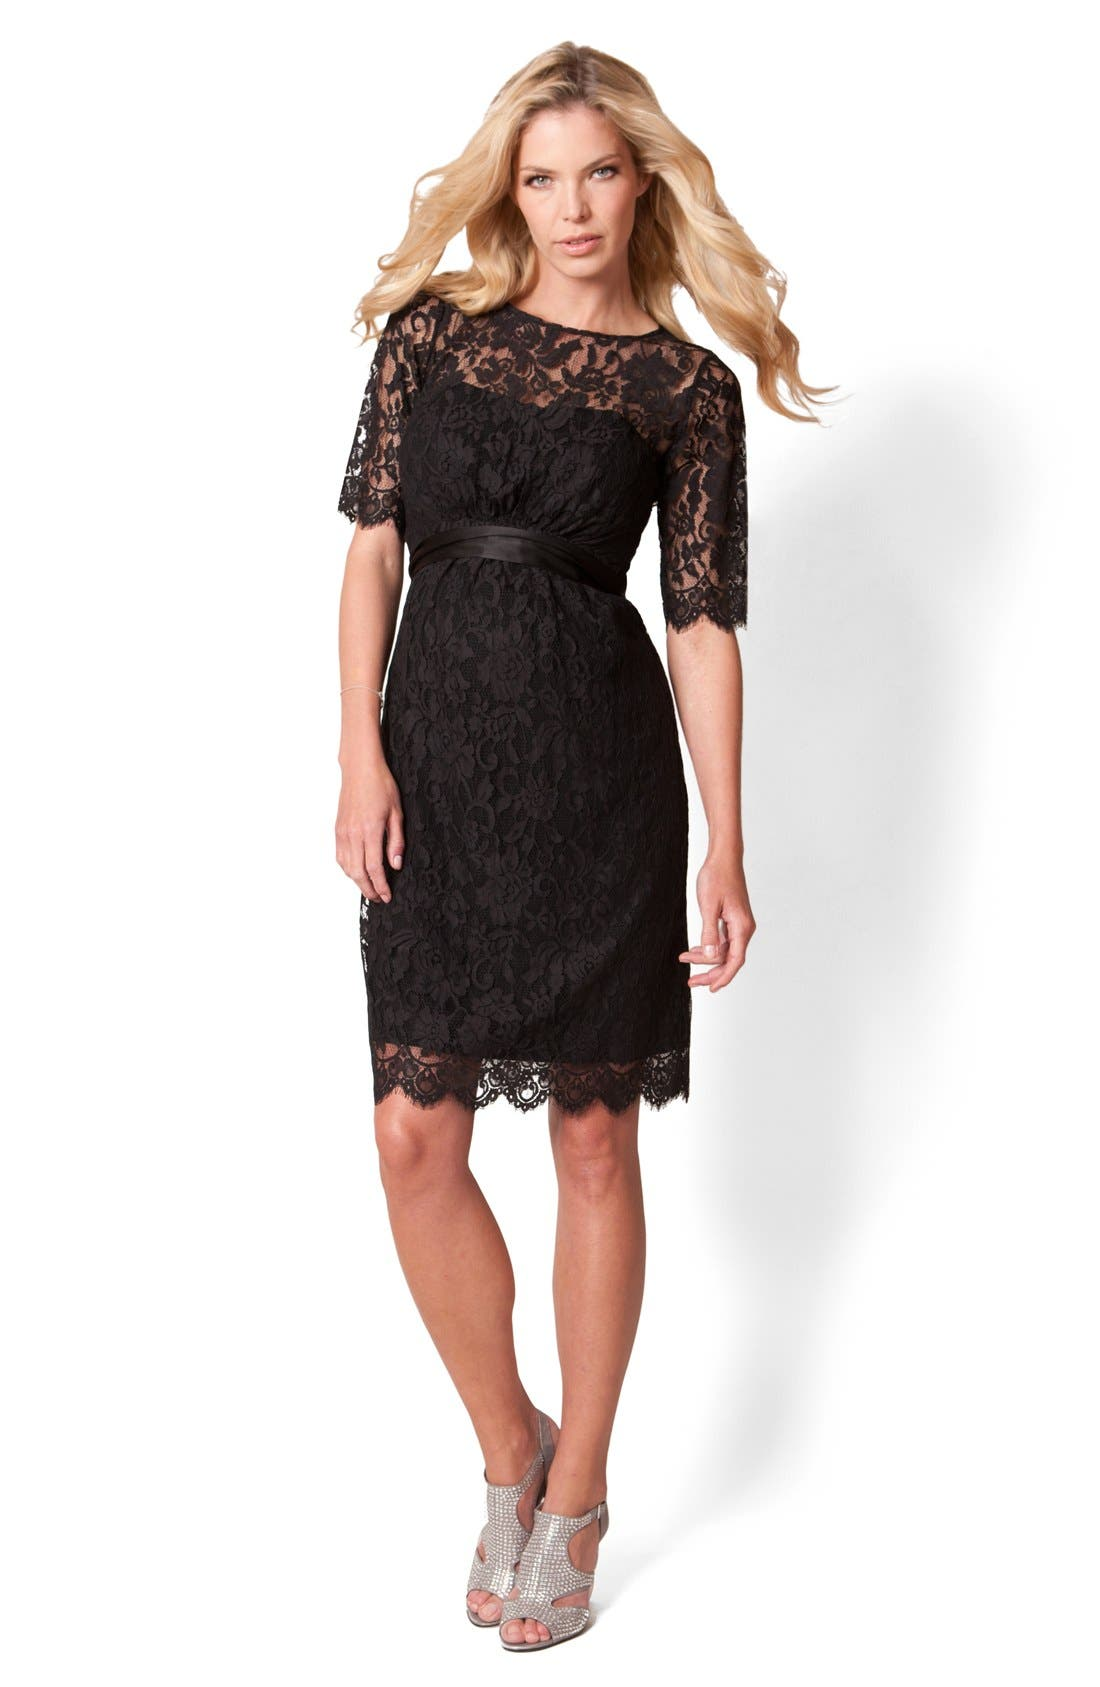 'Ingrid Luxe' Lace Maternity Dress,                             Alternate thumbnail 2, color,                             Black